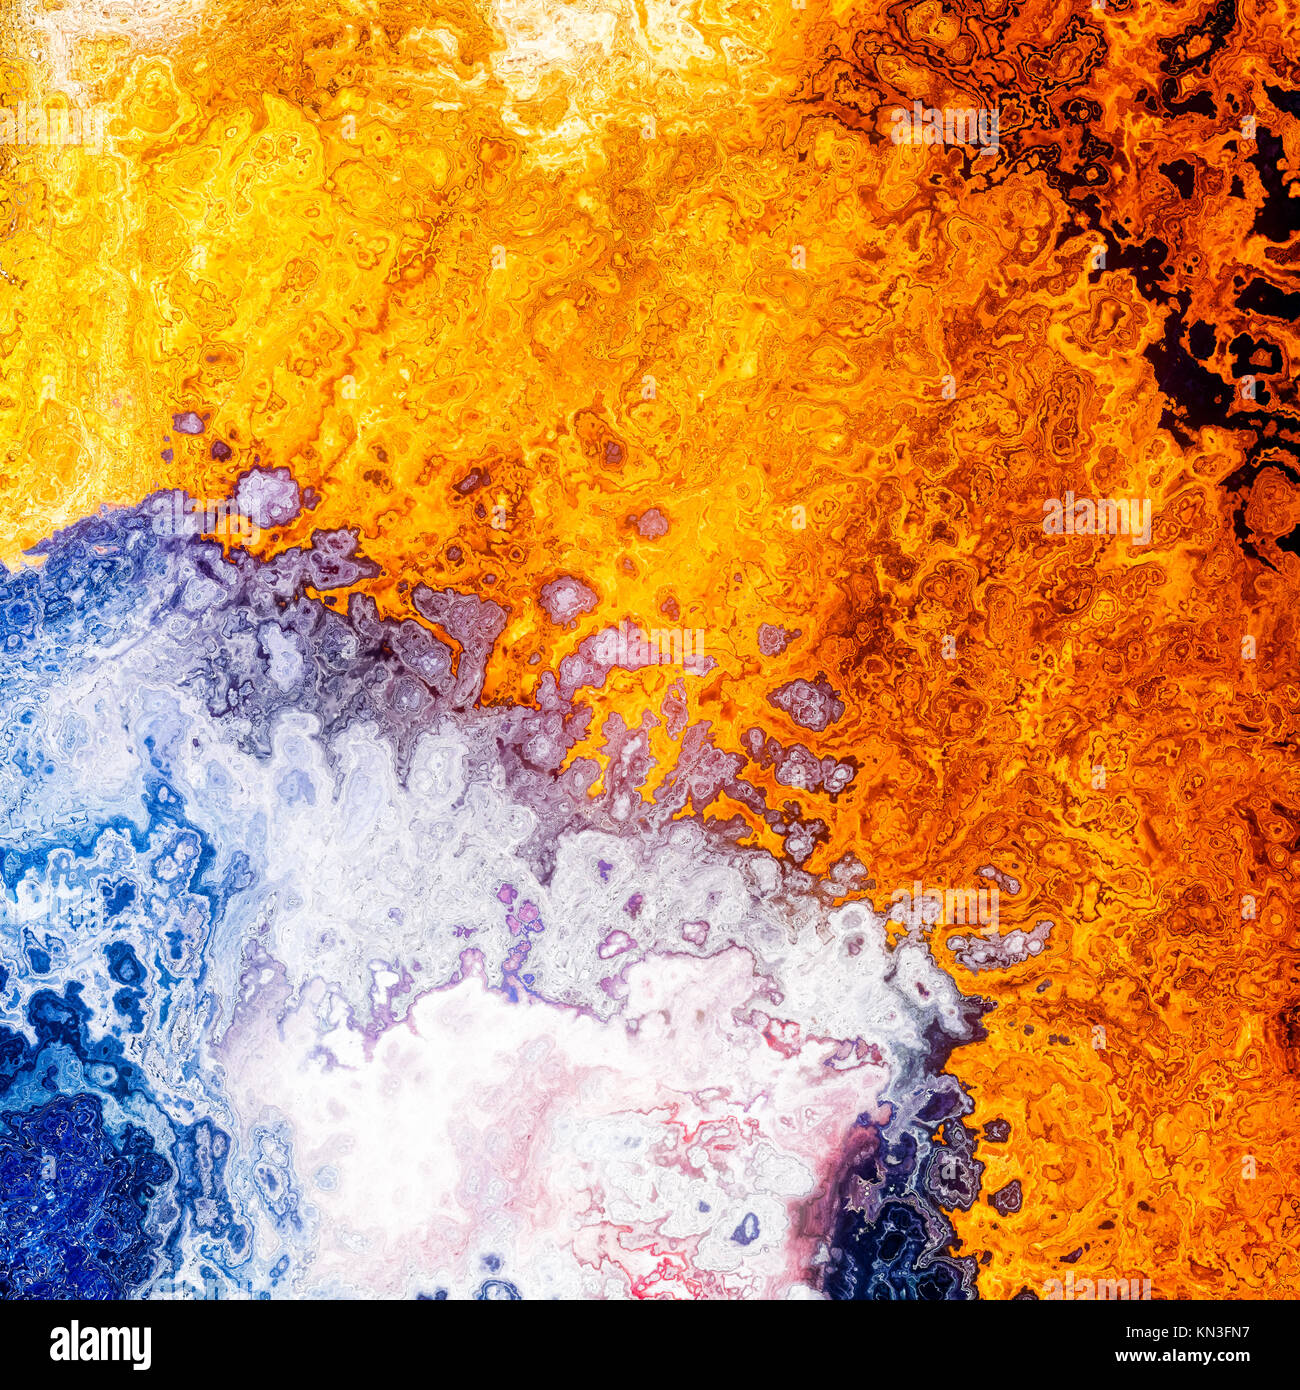 Silver gold liquid blend layers, abstract background illustration Stock Photo